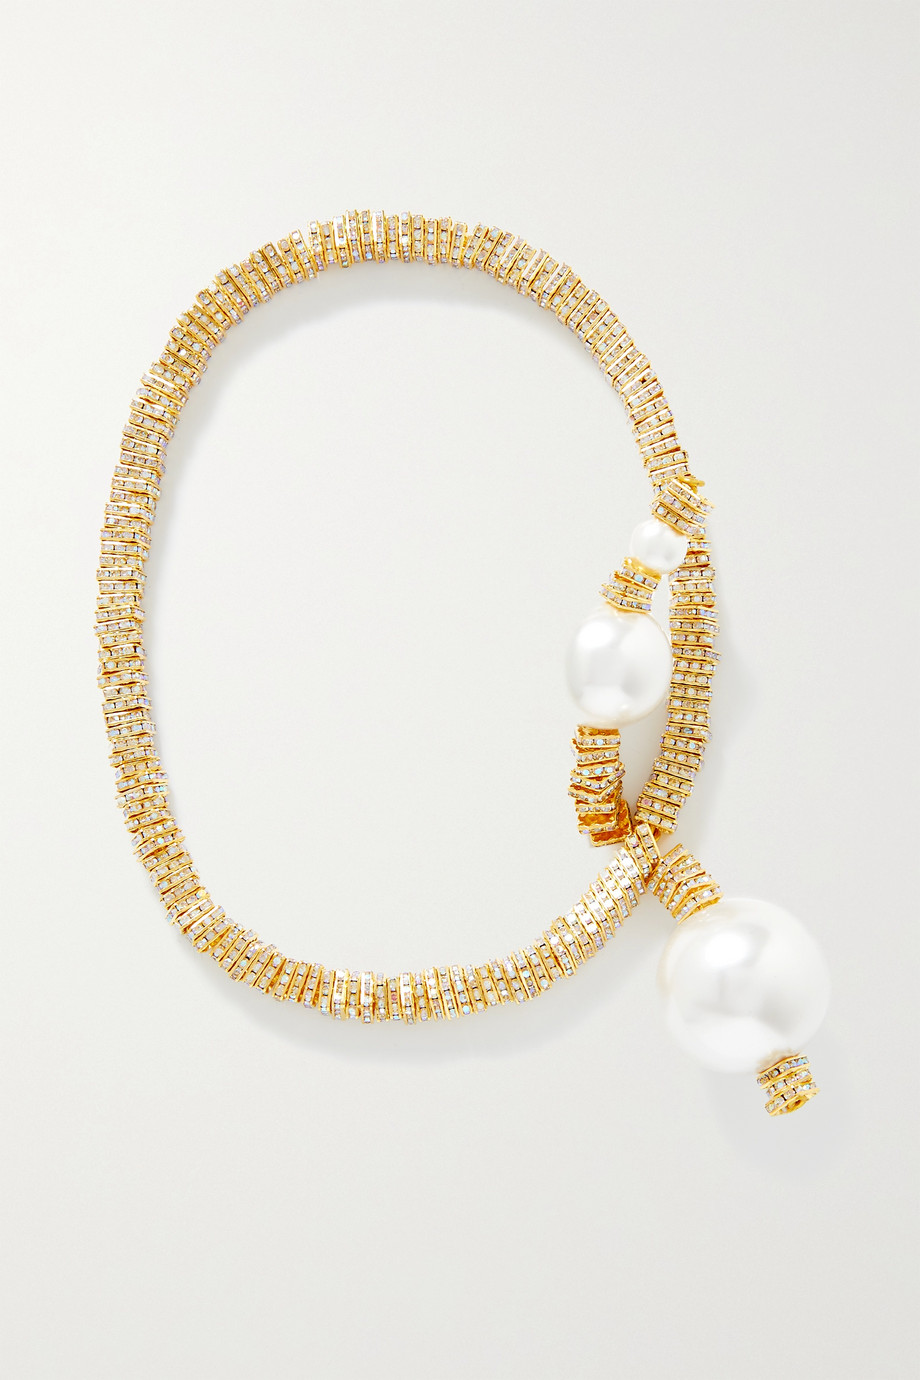 PEARL OCTOPUSS.Y Golden Snake convertible gold-plated, crystal and faux pearl necklace